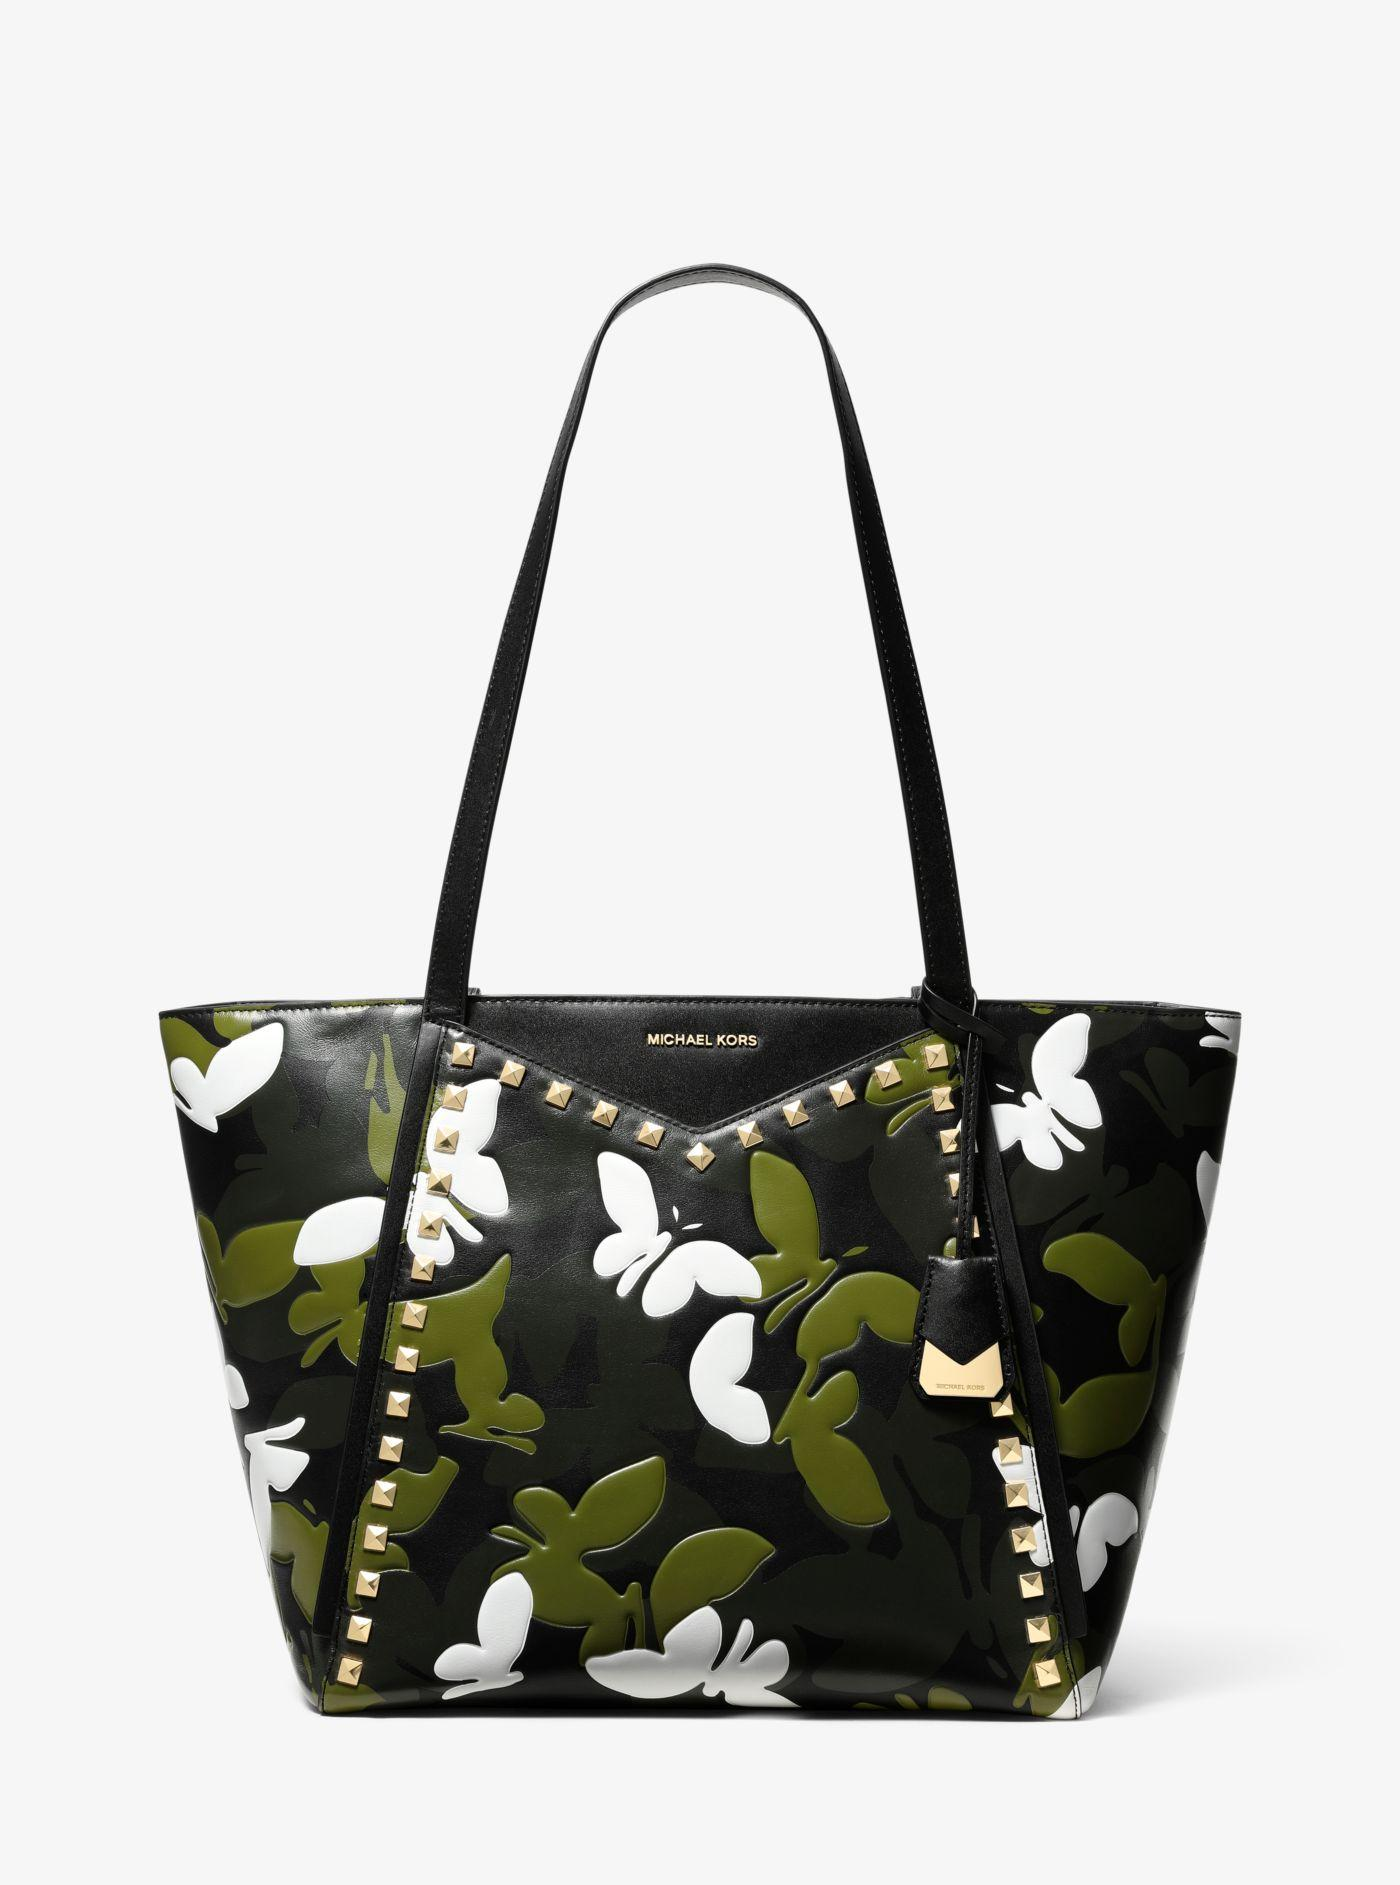 99f4795473c7 Michael Kors - Black Whitney Large Butterfly Camo Leather Tote - Lyst. View  fullscreen